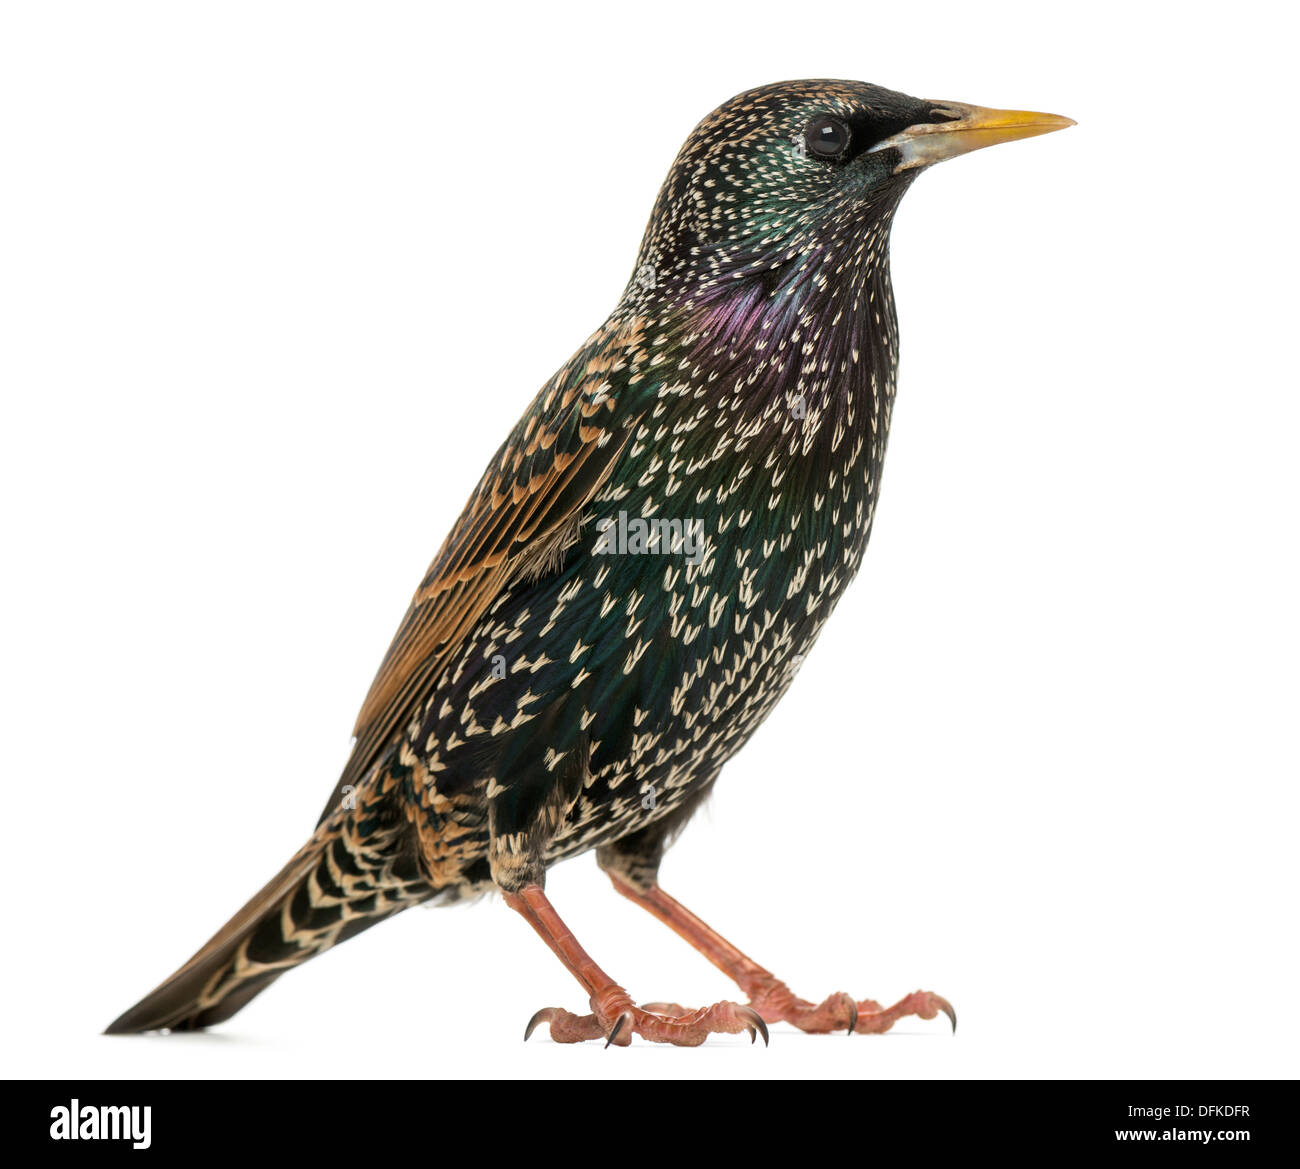 Side view of a Common Starling, Sturnus vulgaris, against white background - Stock Image